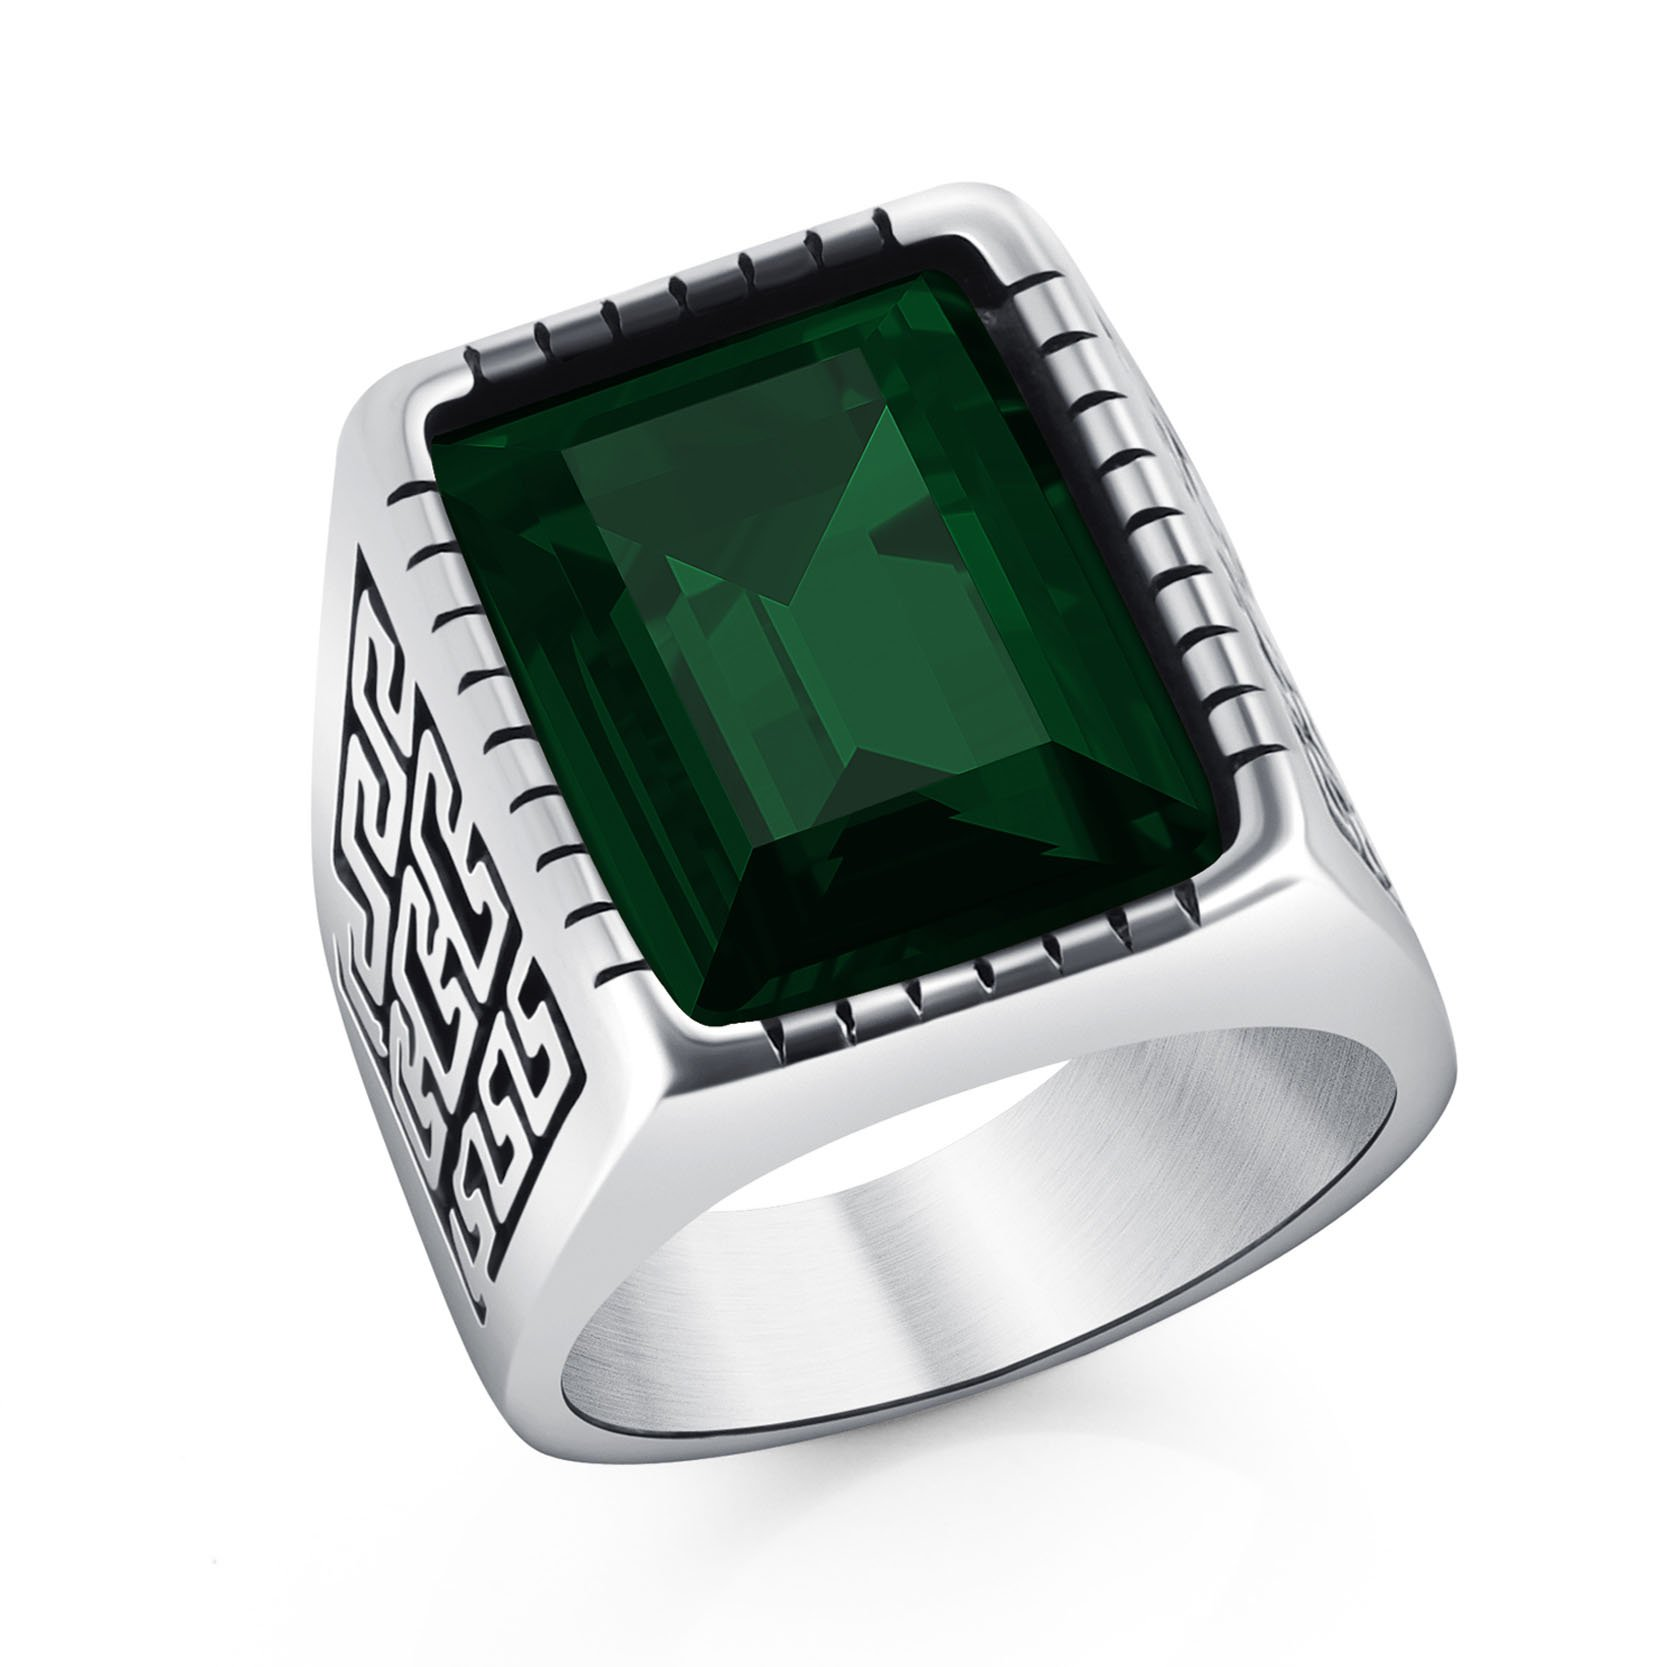 Retro Great Wall Pattern Stainless Steel Vintage Green Square Gemstone Ring for Boys Size 9